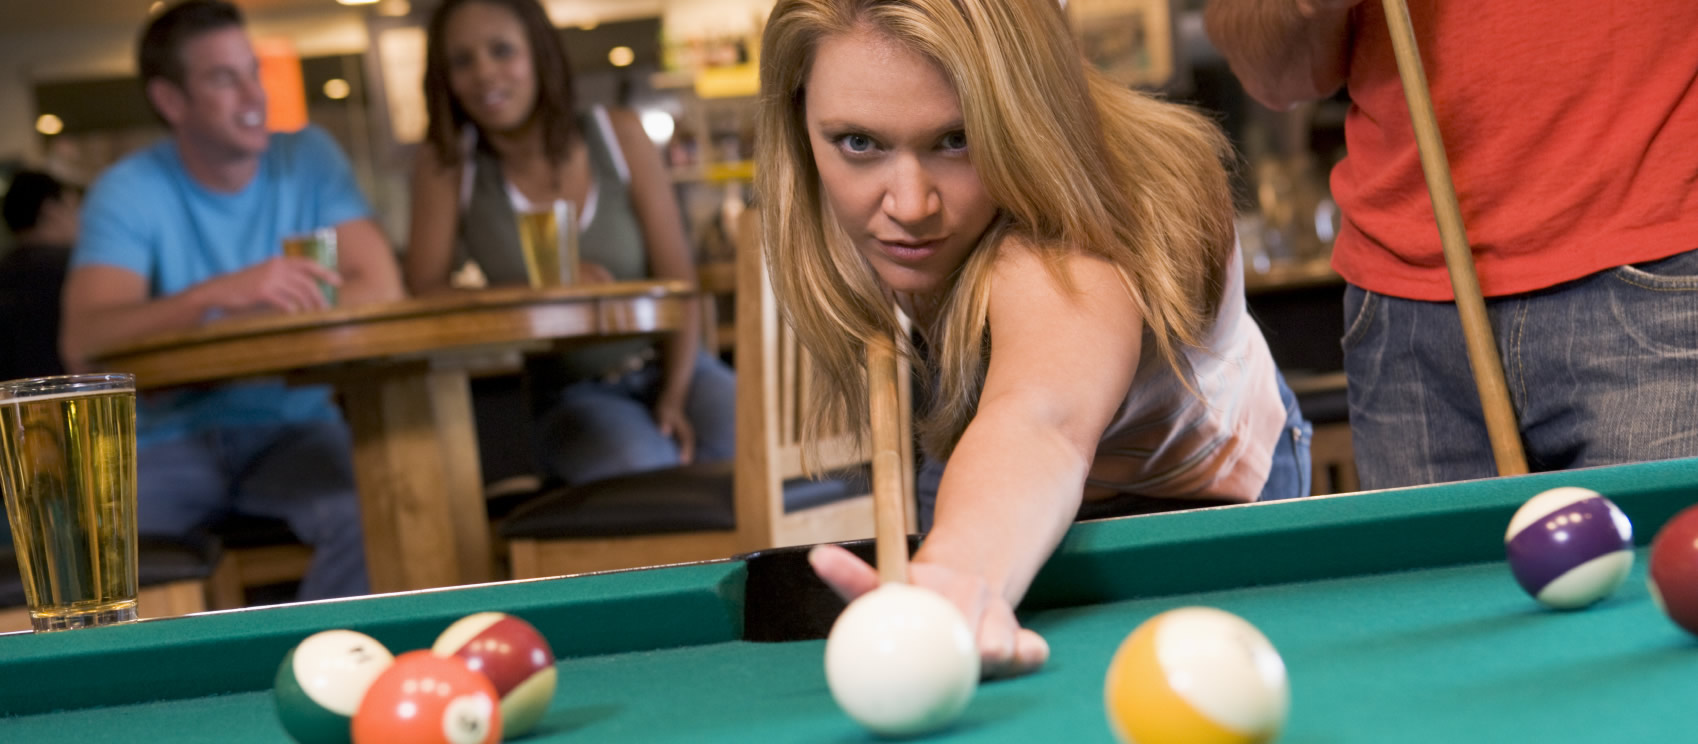 pool_table_womenv2